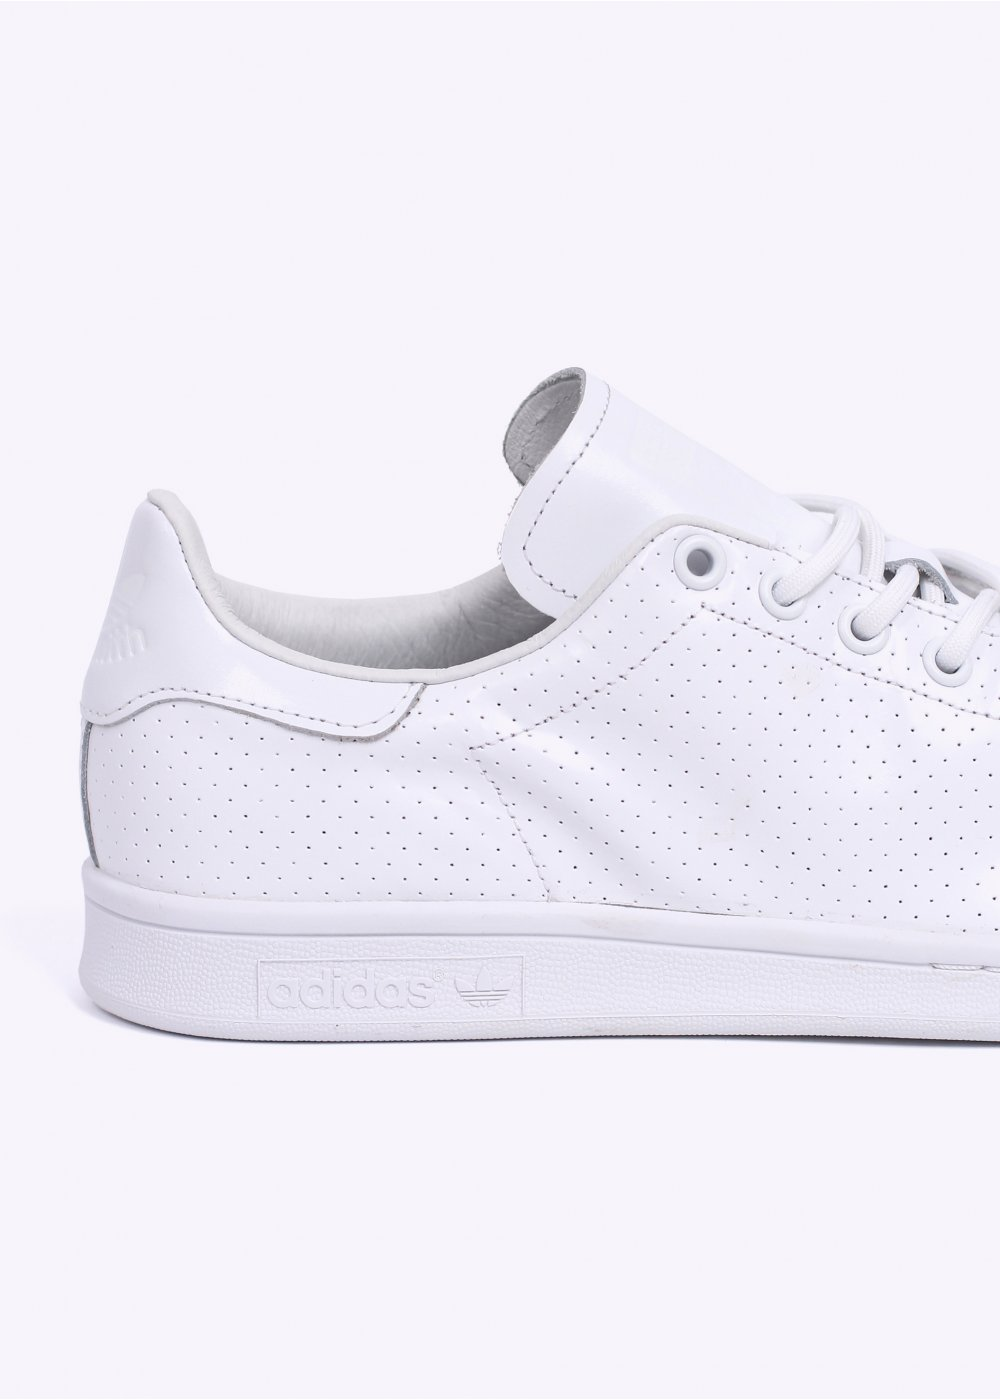 adidas Originals Stan Smith Perforated Leather Trainers ...